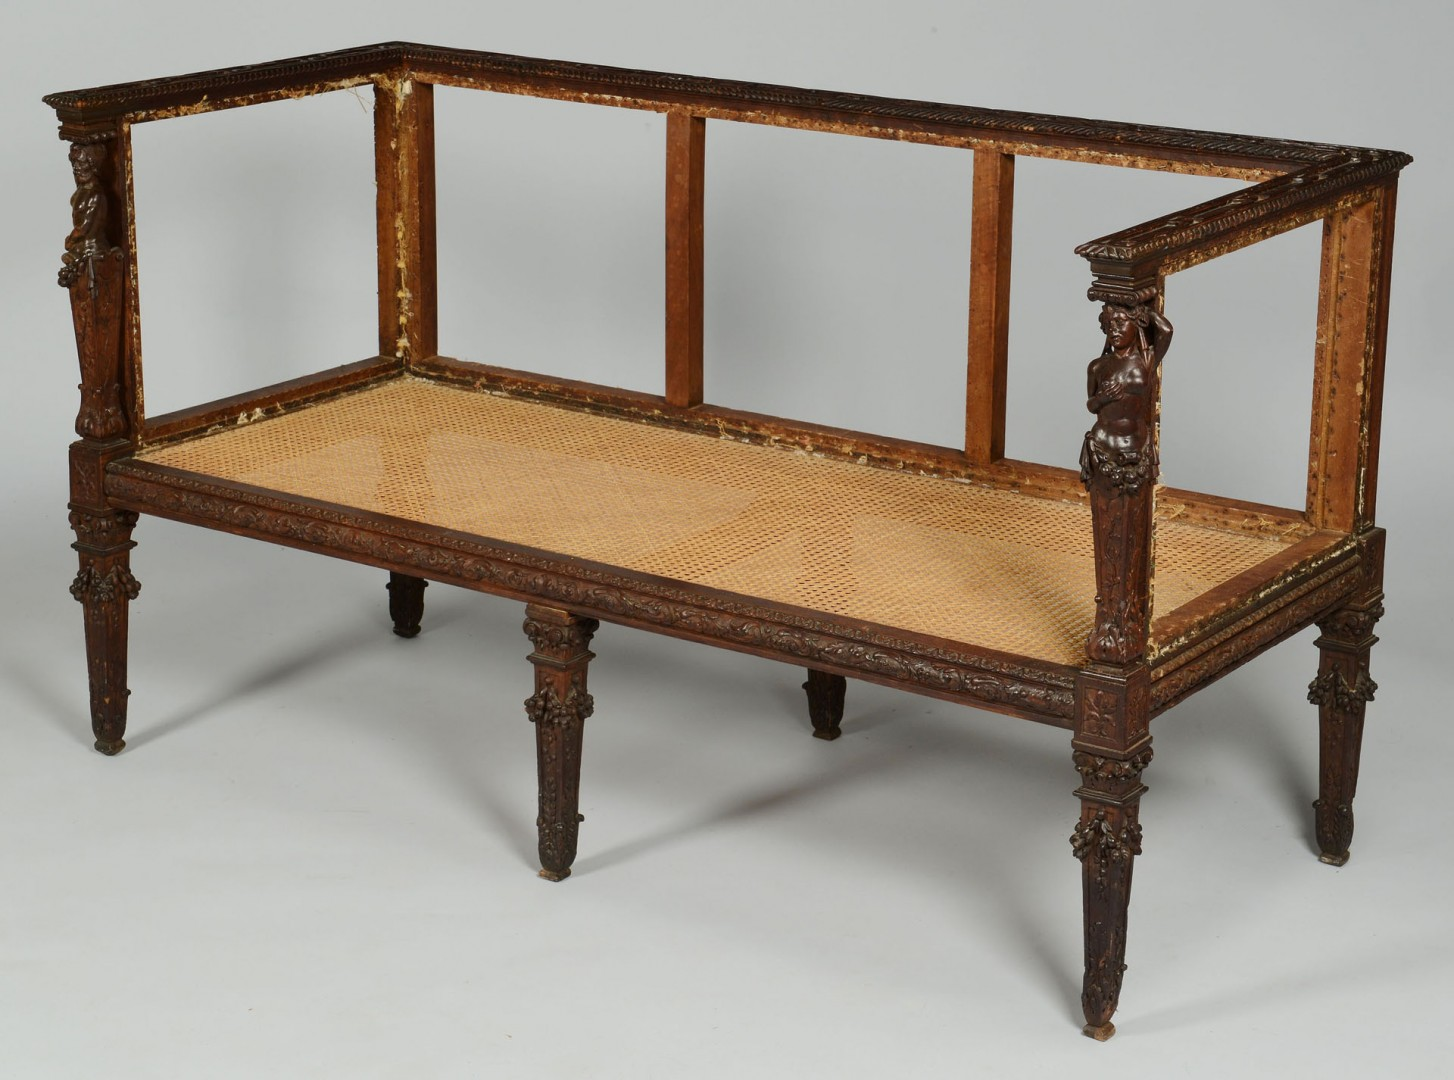 Carved Renaissance Style Settee & 15th C. Fabric